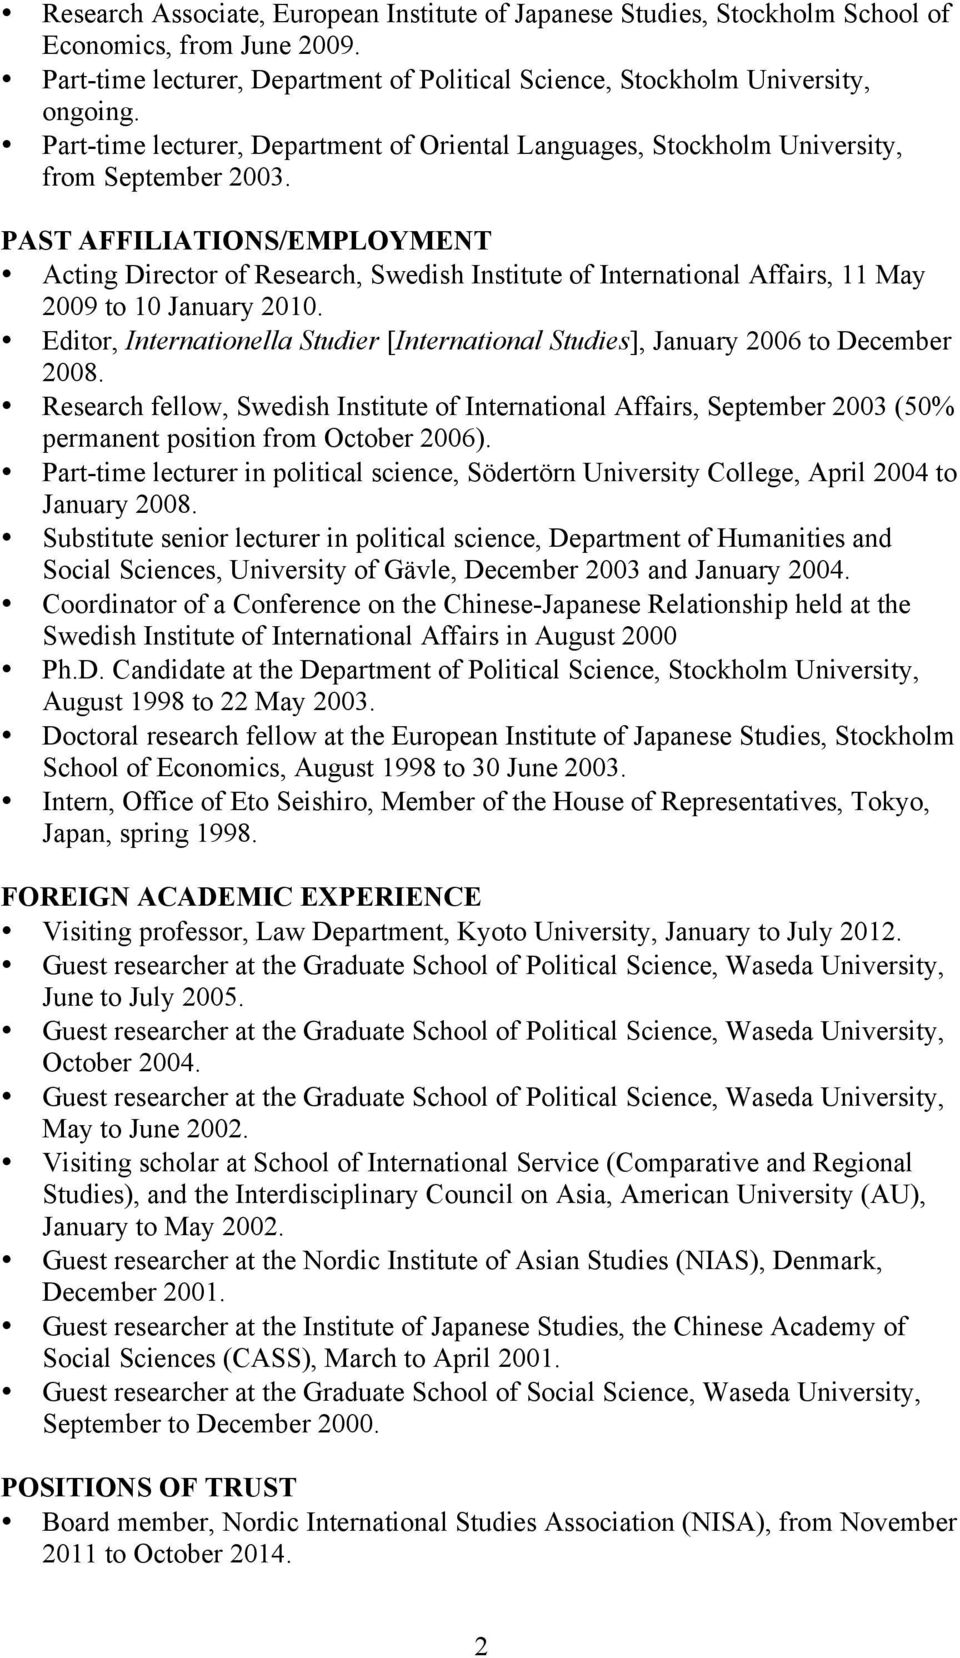 PAST AFFILIATIONS/EMPLOYMENT Acting Director of Research, Swedish Institute of International Affairs, 11 May 2009 to 10 January 2010.